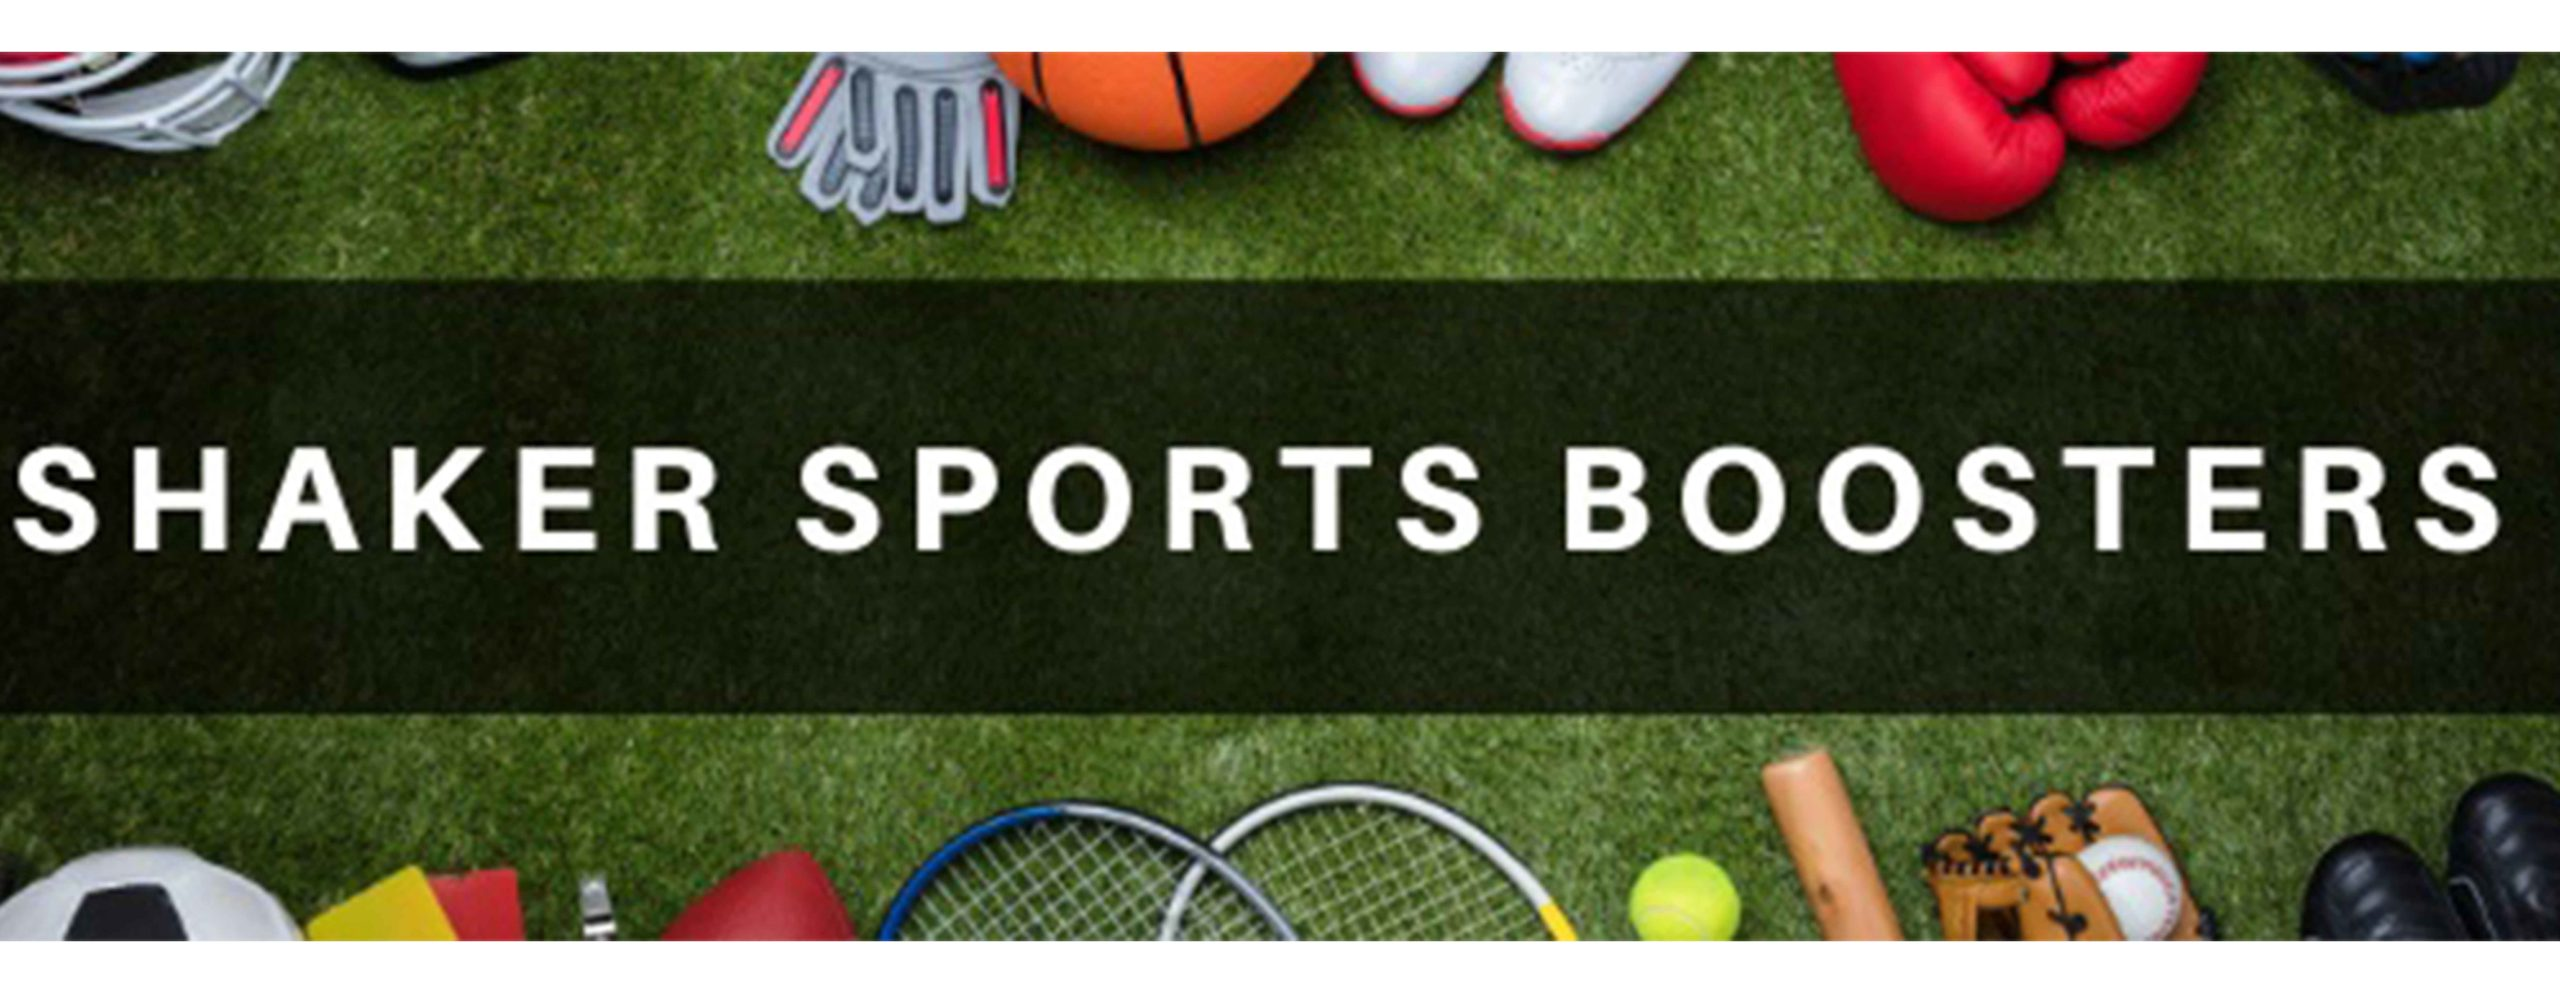 sports boosters banner